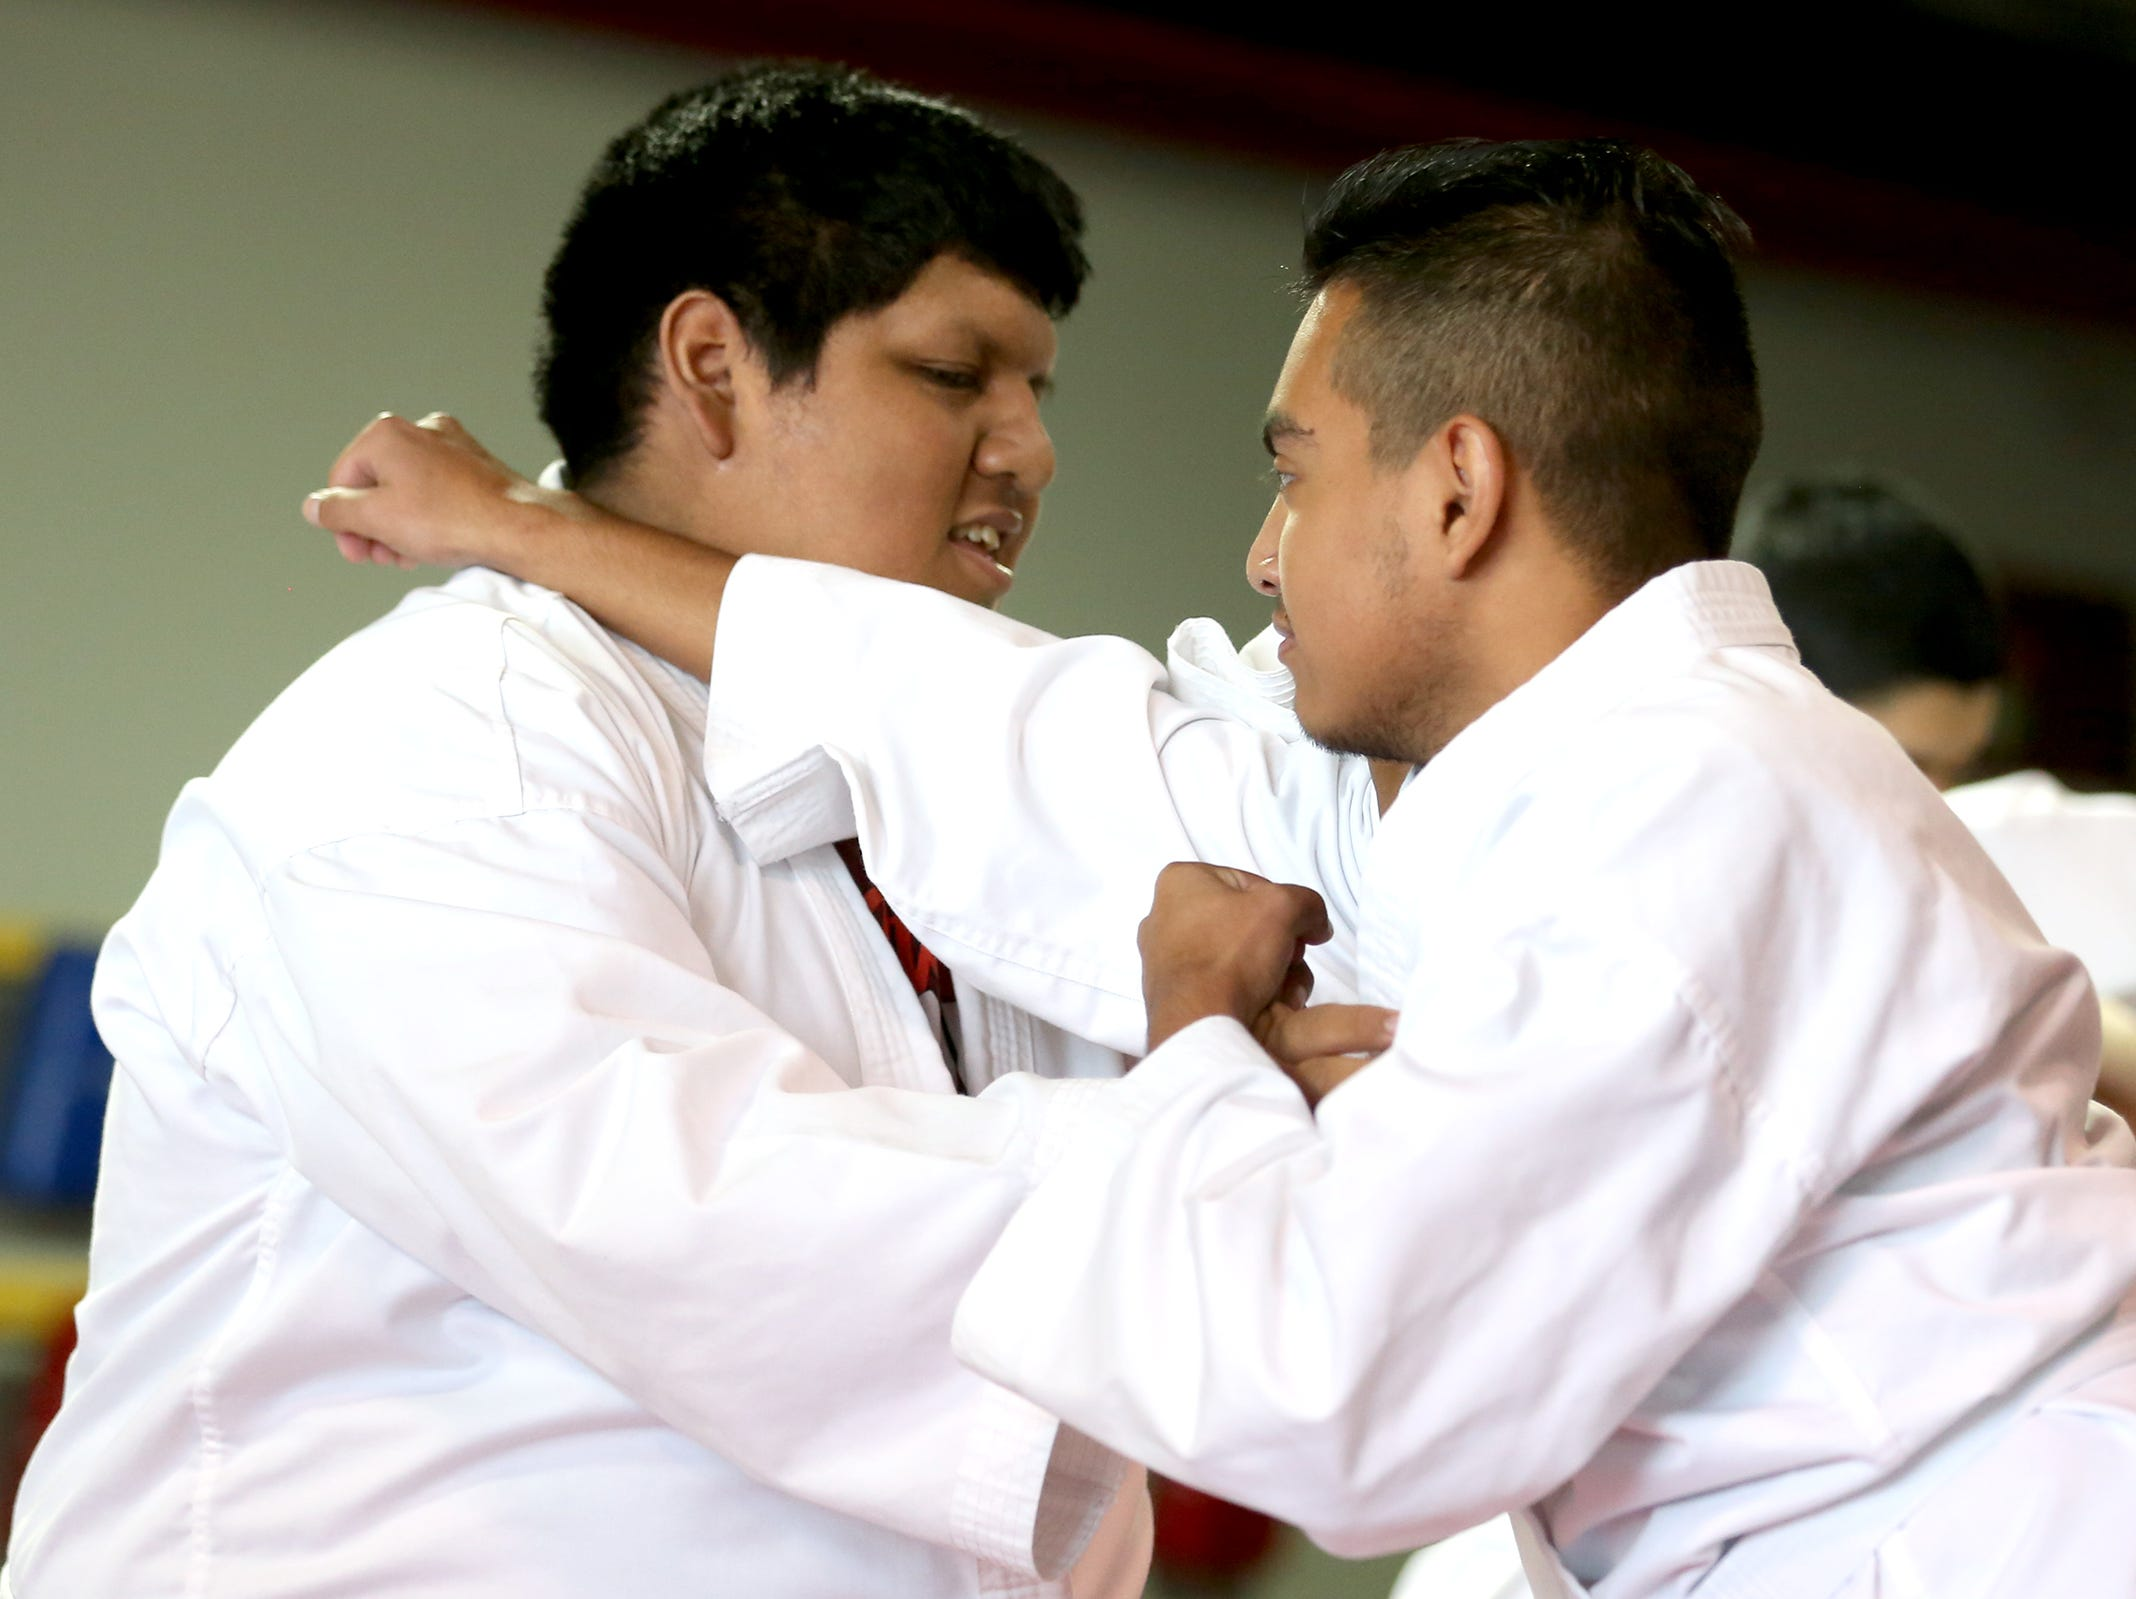 Miguel Martinez (left) and Abram Cortes (right) practice a partner exercise as part of a Woodburn School District transition program at ATA Martial Arts Keizer on Thursday, Dec.13, 2018.